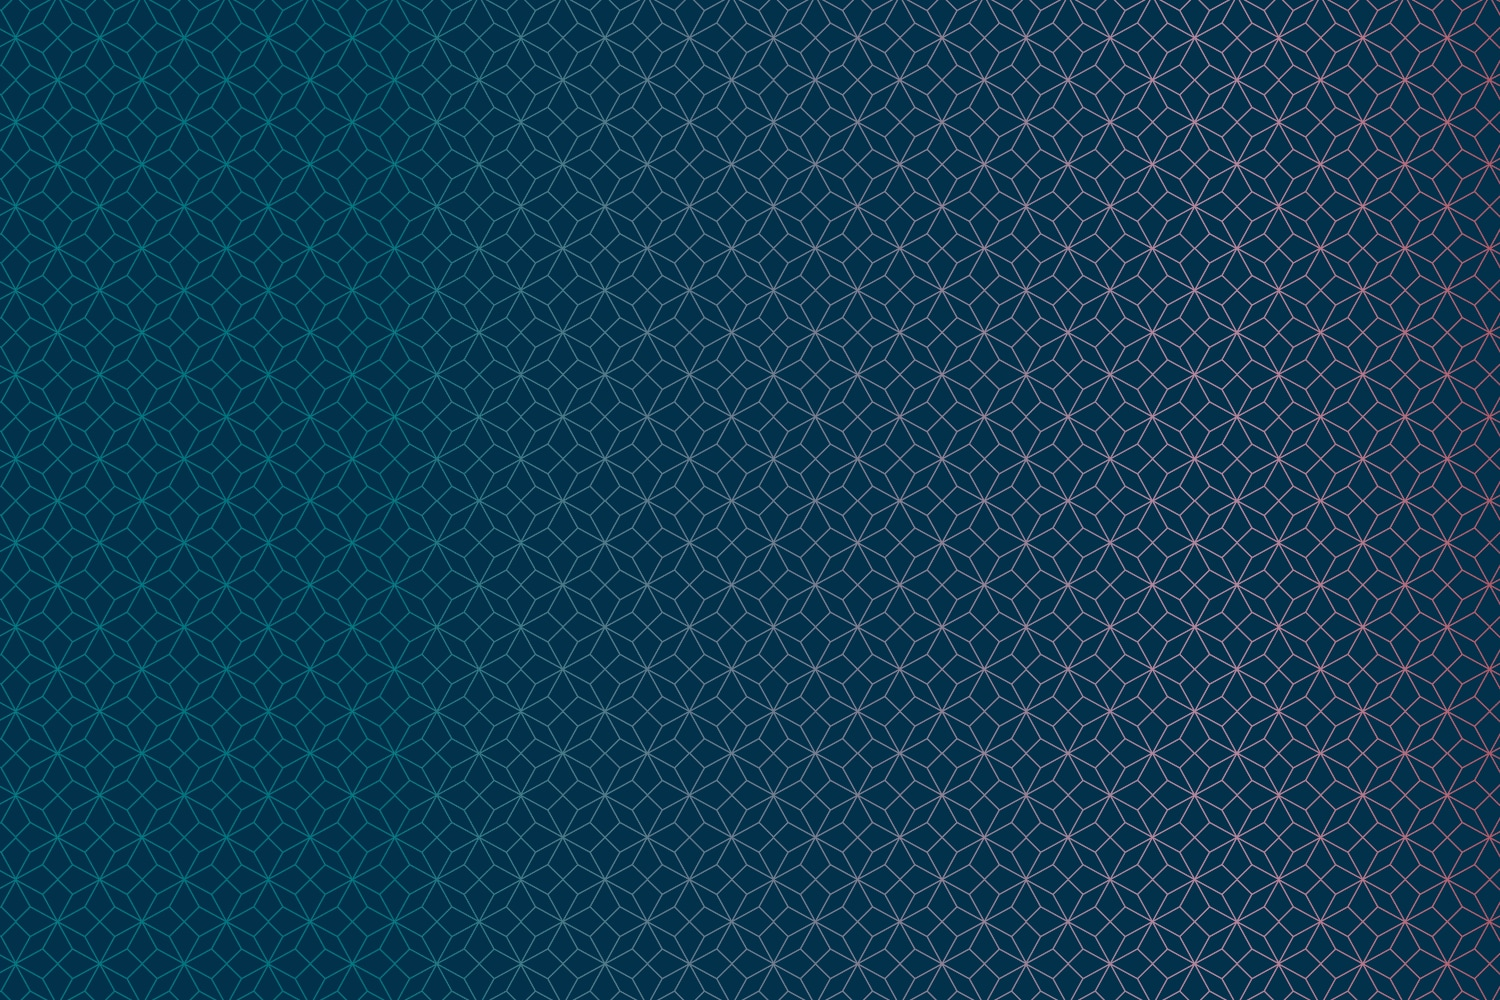 Midnight background with teal and coral gradient origami pattern